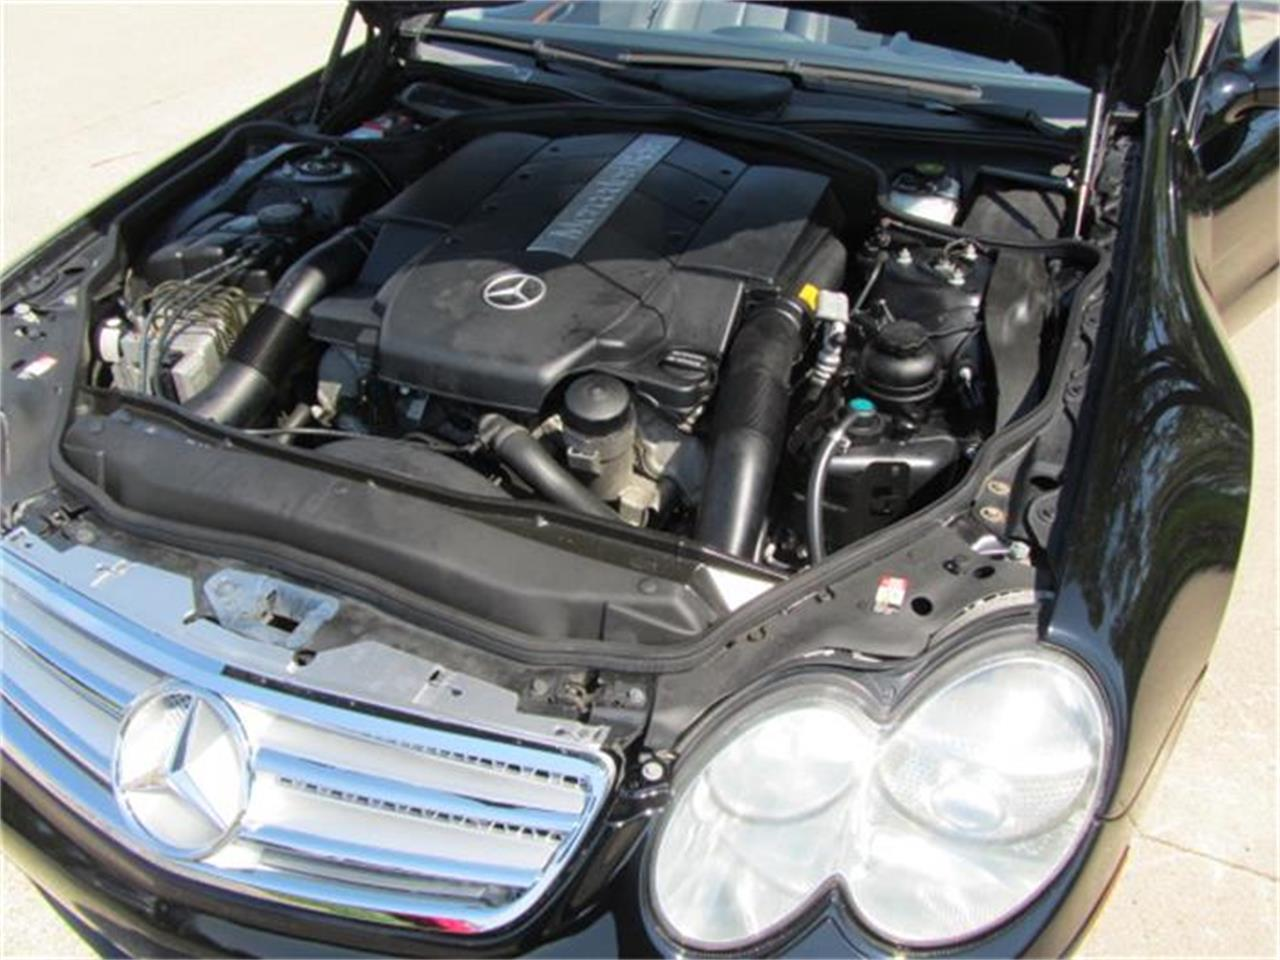 Large Picture of 2003 Mercedes-Benz SL500 located in Nebraska - $19,900.00 - I54G